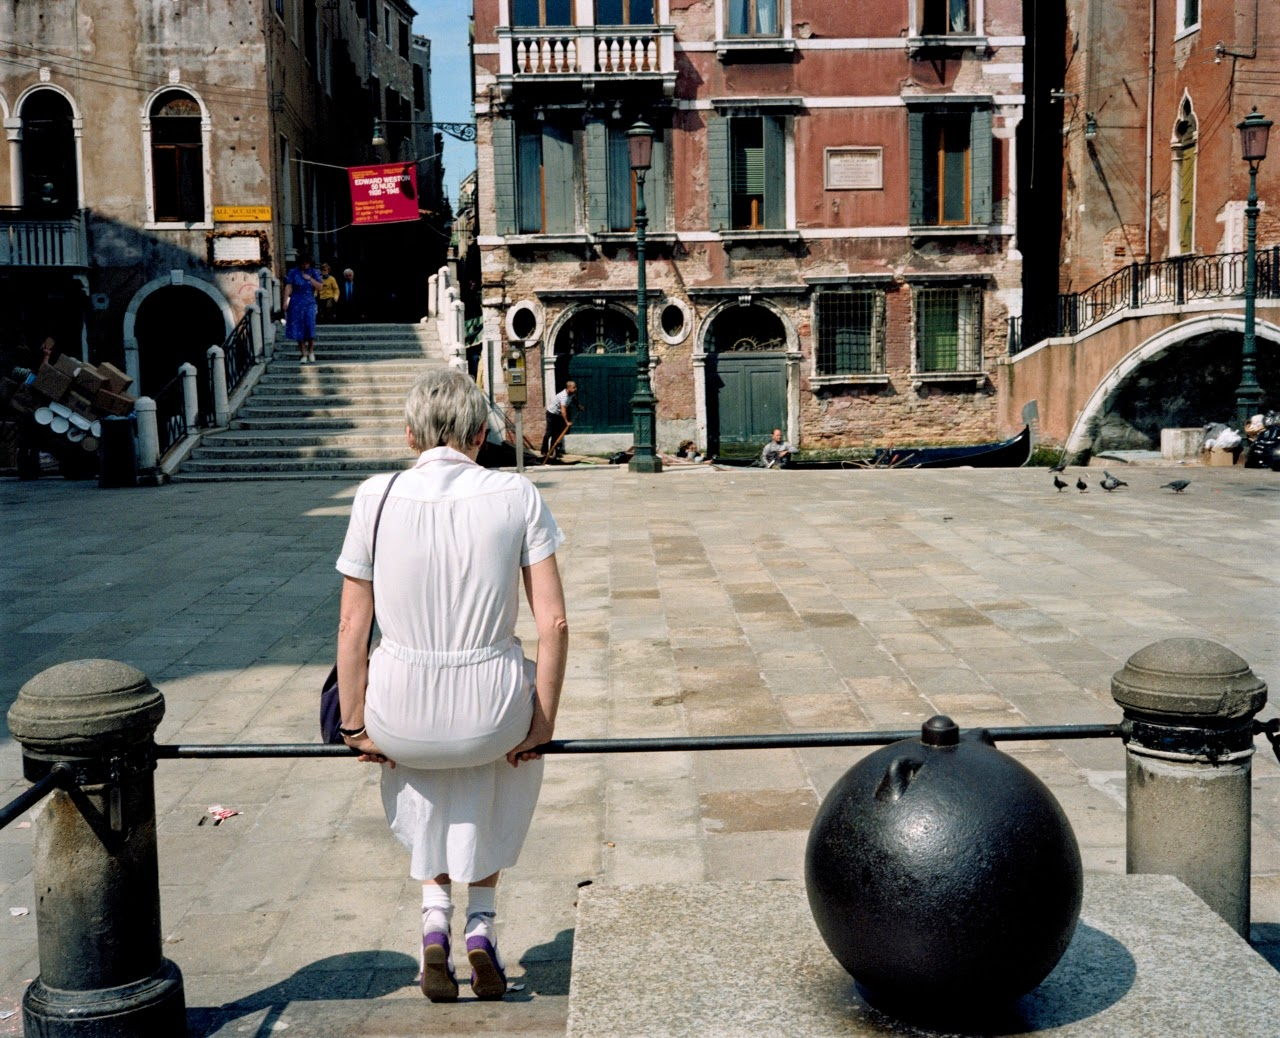 15 Wonderful Color Photographs Captured Everyday Life In